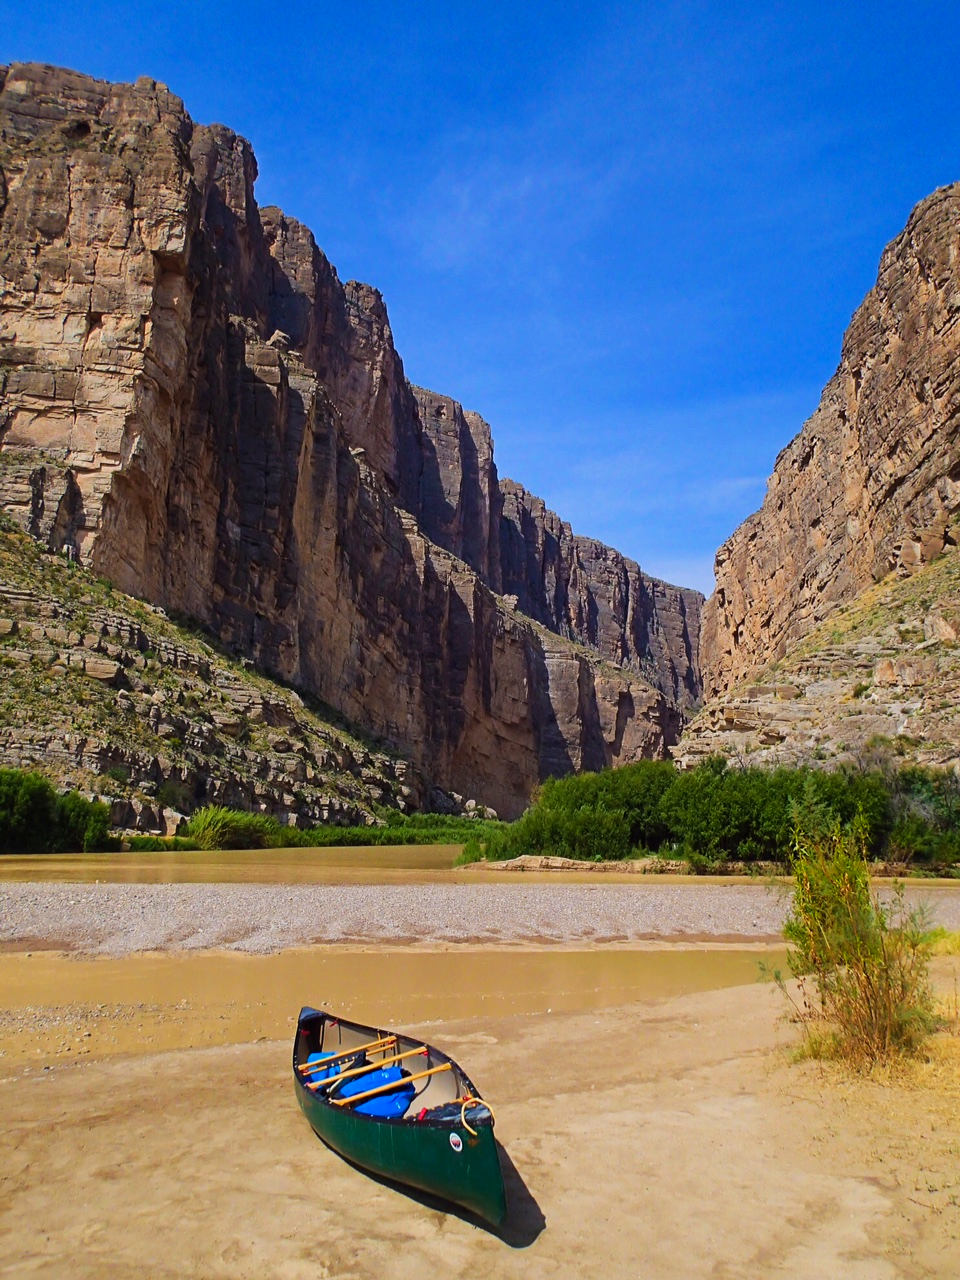 Canoeing Santa Elena Canyon Big-Bend National Park, Texas